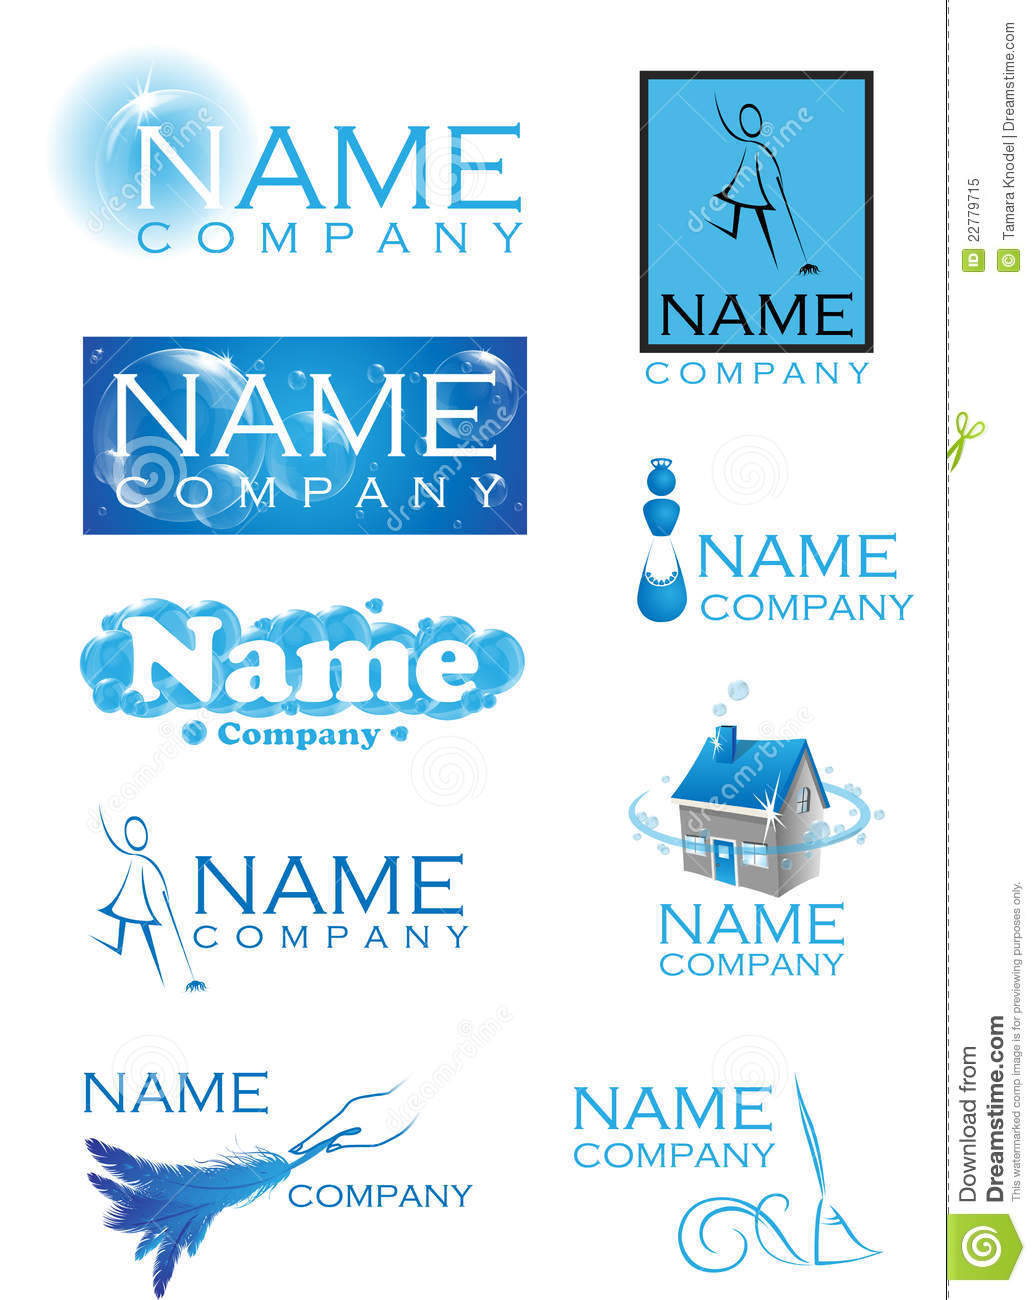 Cleaning Logos Royalty Free Stock Photo Image 22779715